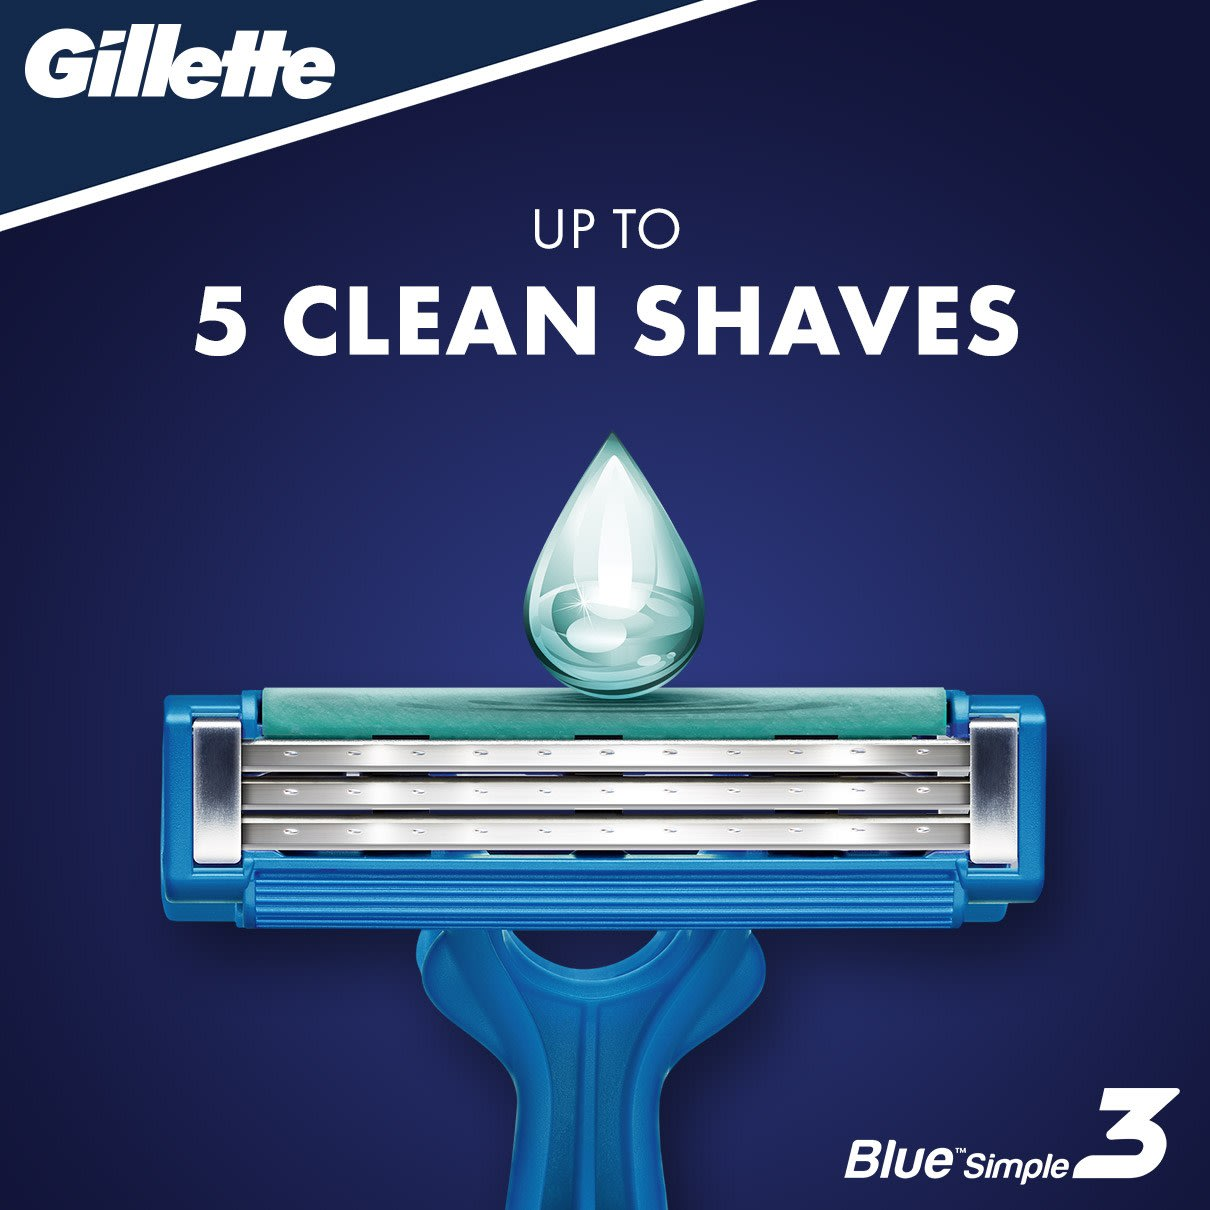 Gillette Blue Simple3 Men's Disposable Razor